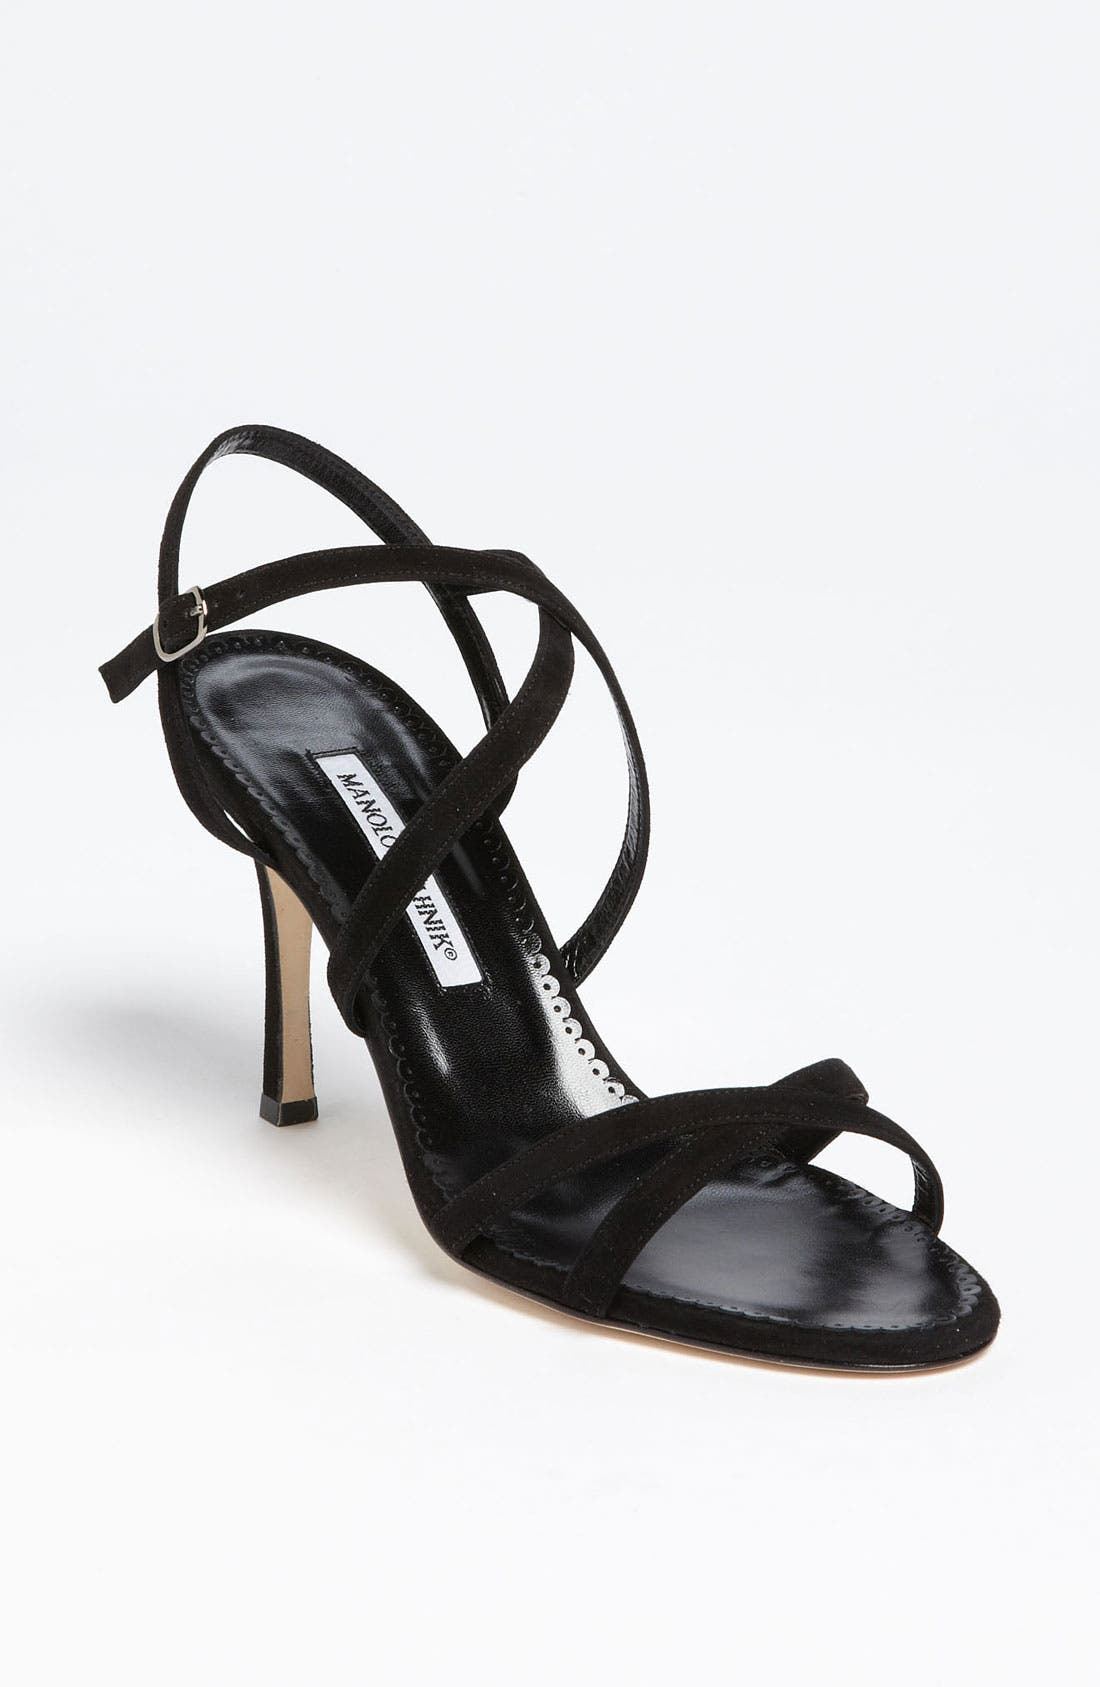 Alternate Image 1 Selected - Manolo Blahnik 'Bayan' Sandal